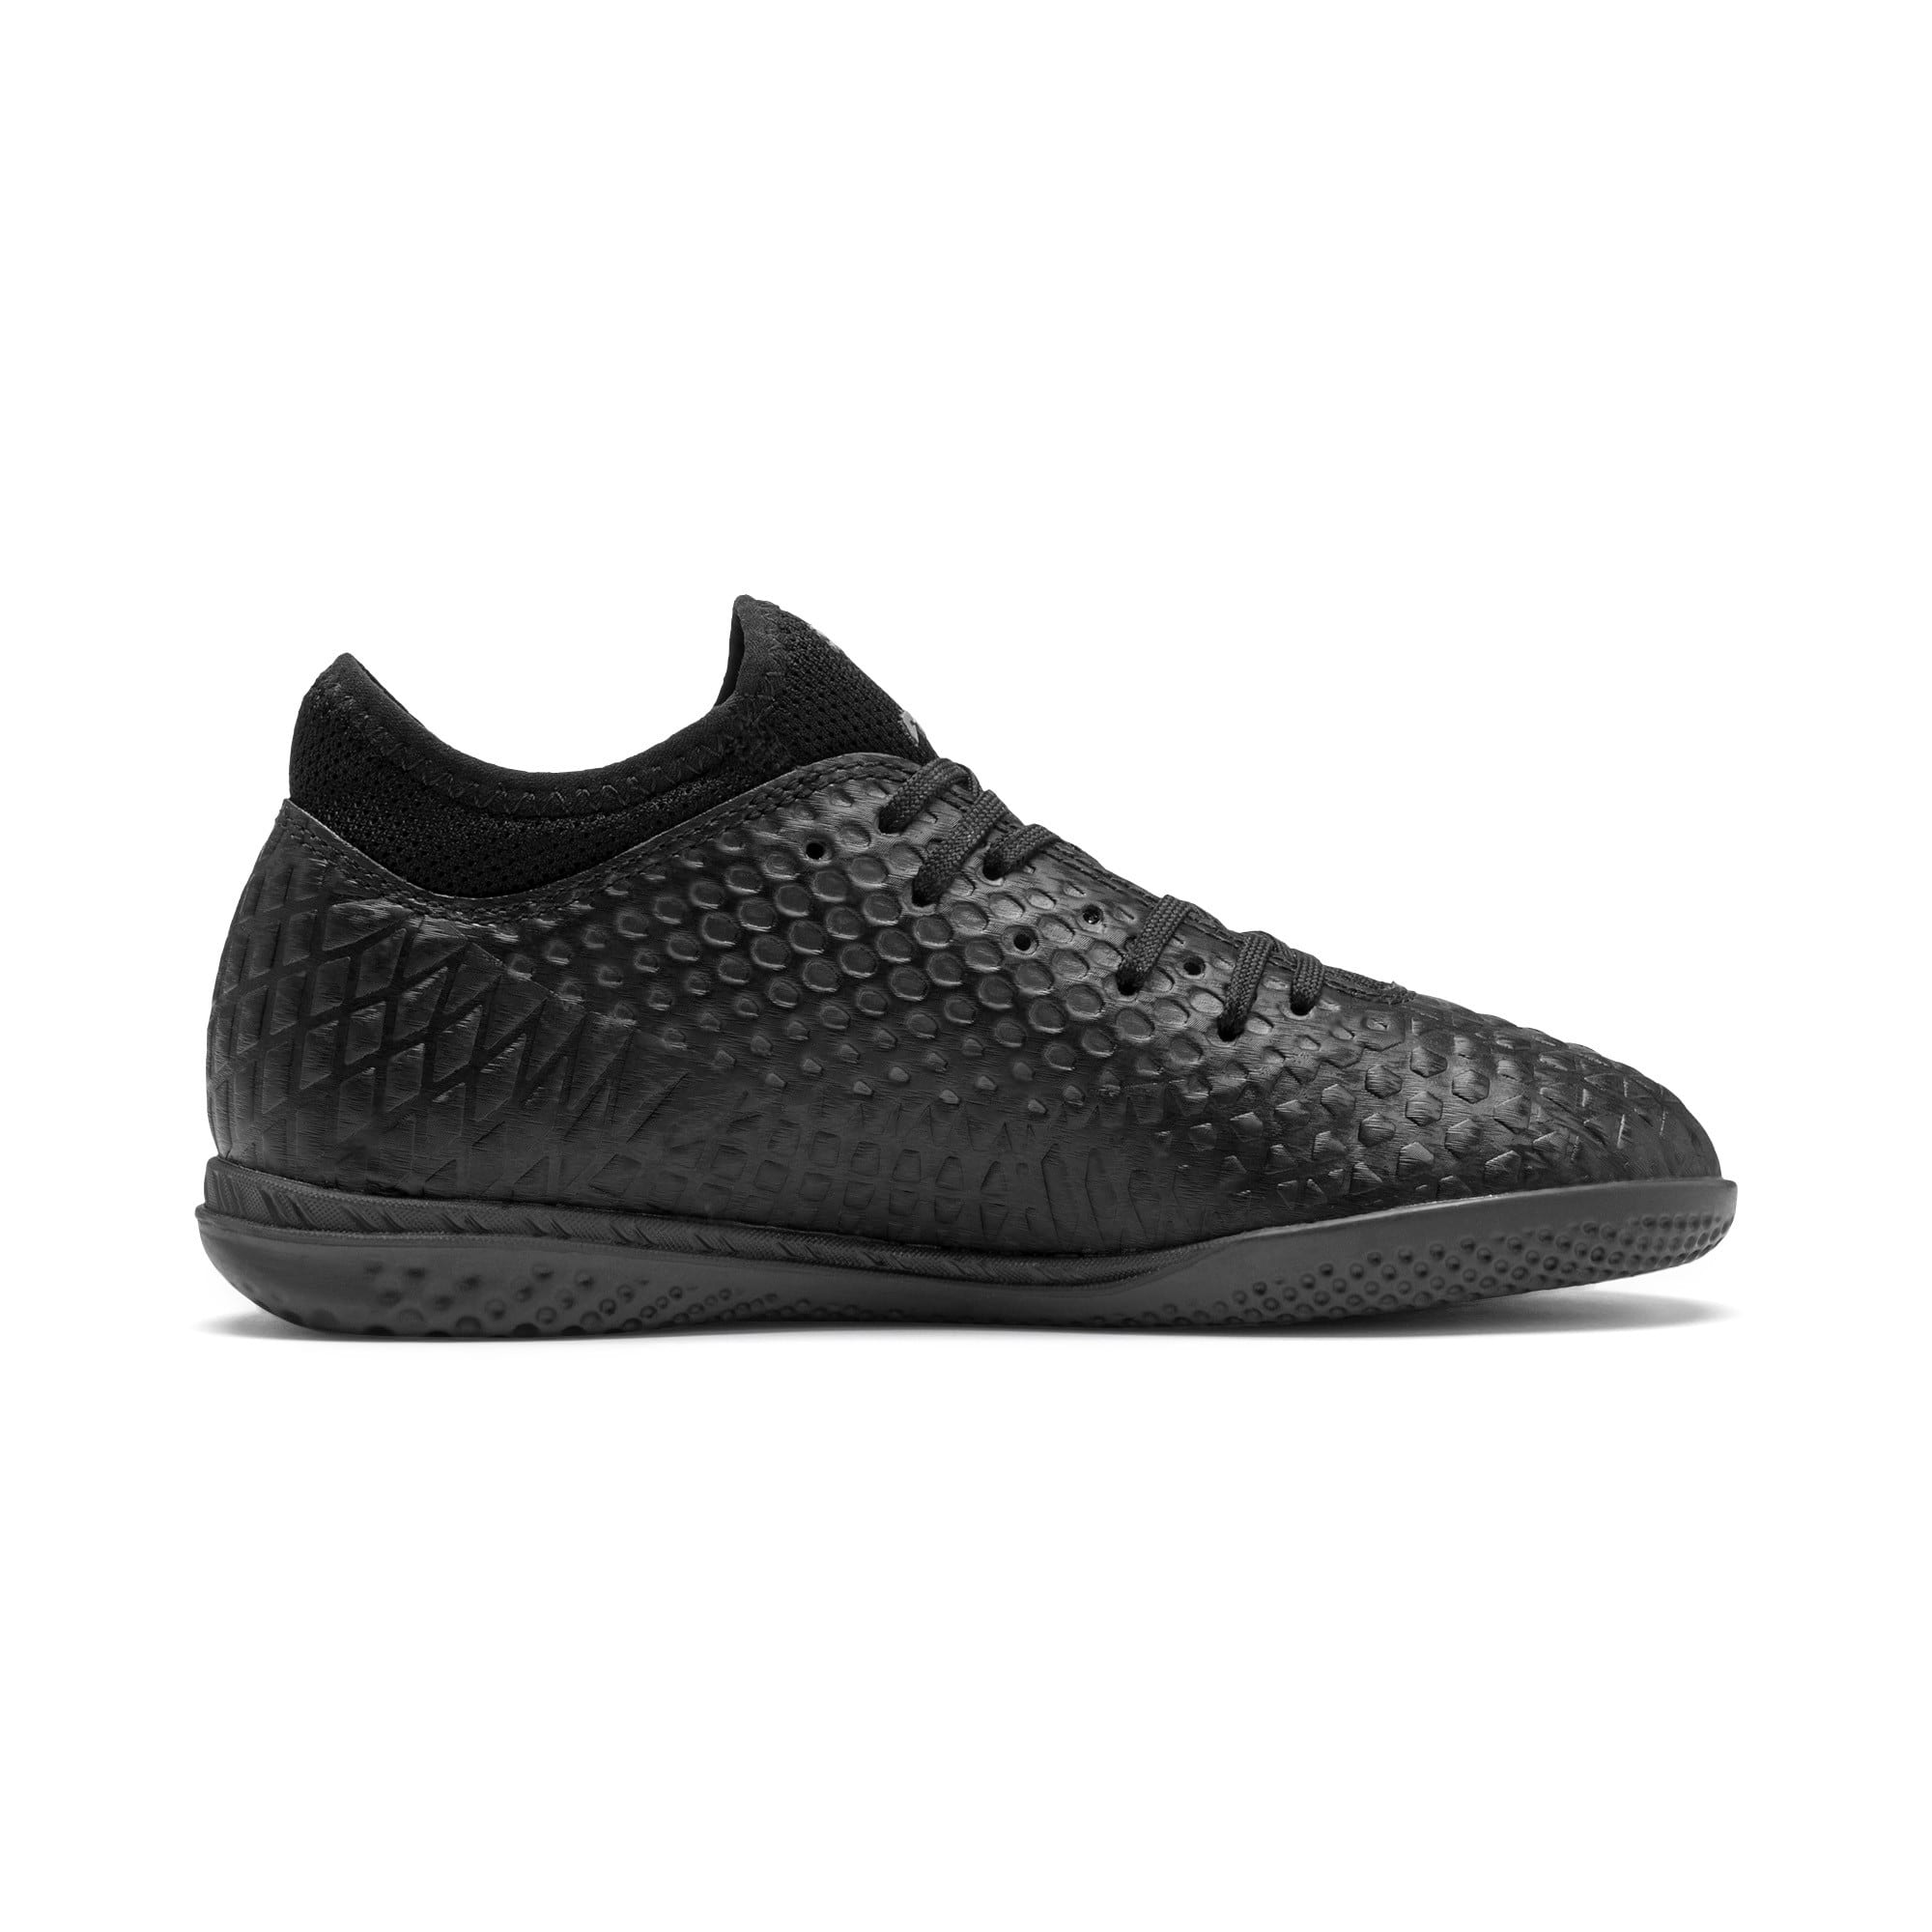 Thumbnail 5 of FUTURE 4.4 IT Youth Football Boots, Black-Black-Puma Aged Silver, medium